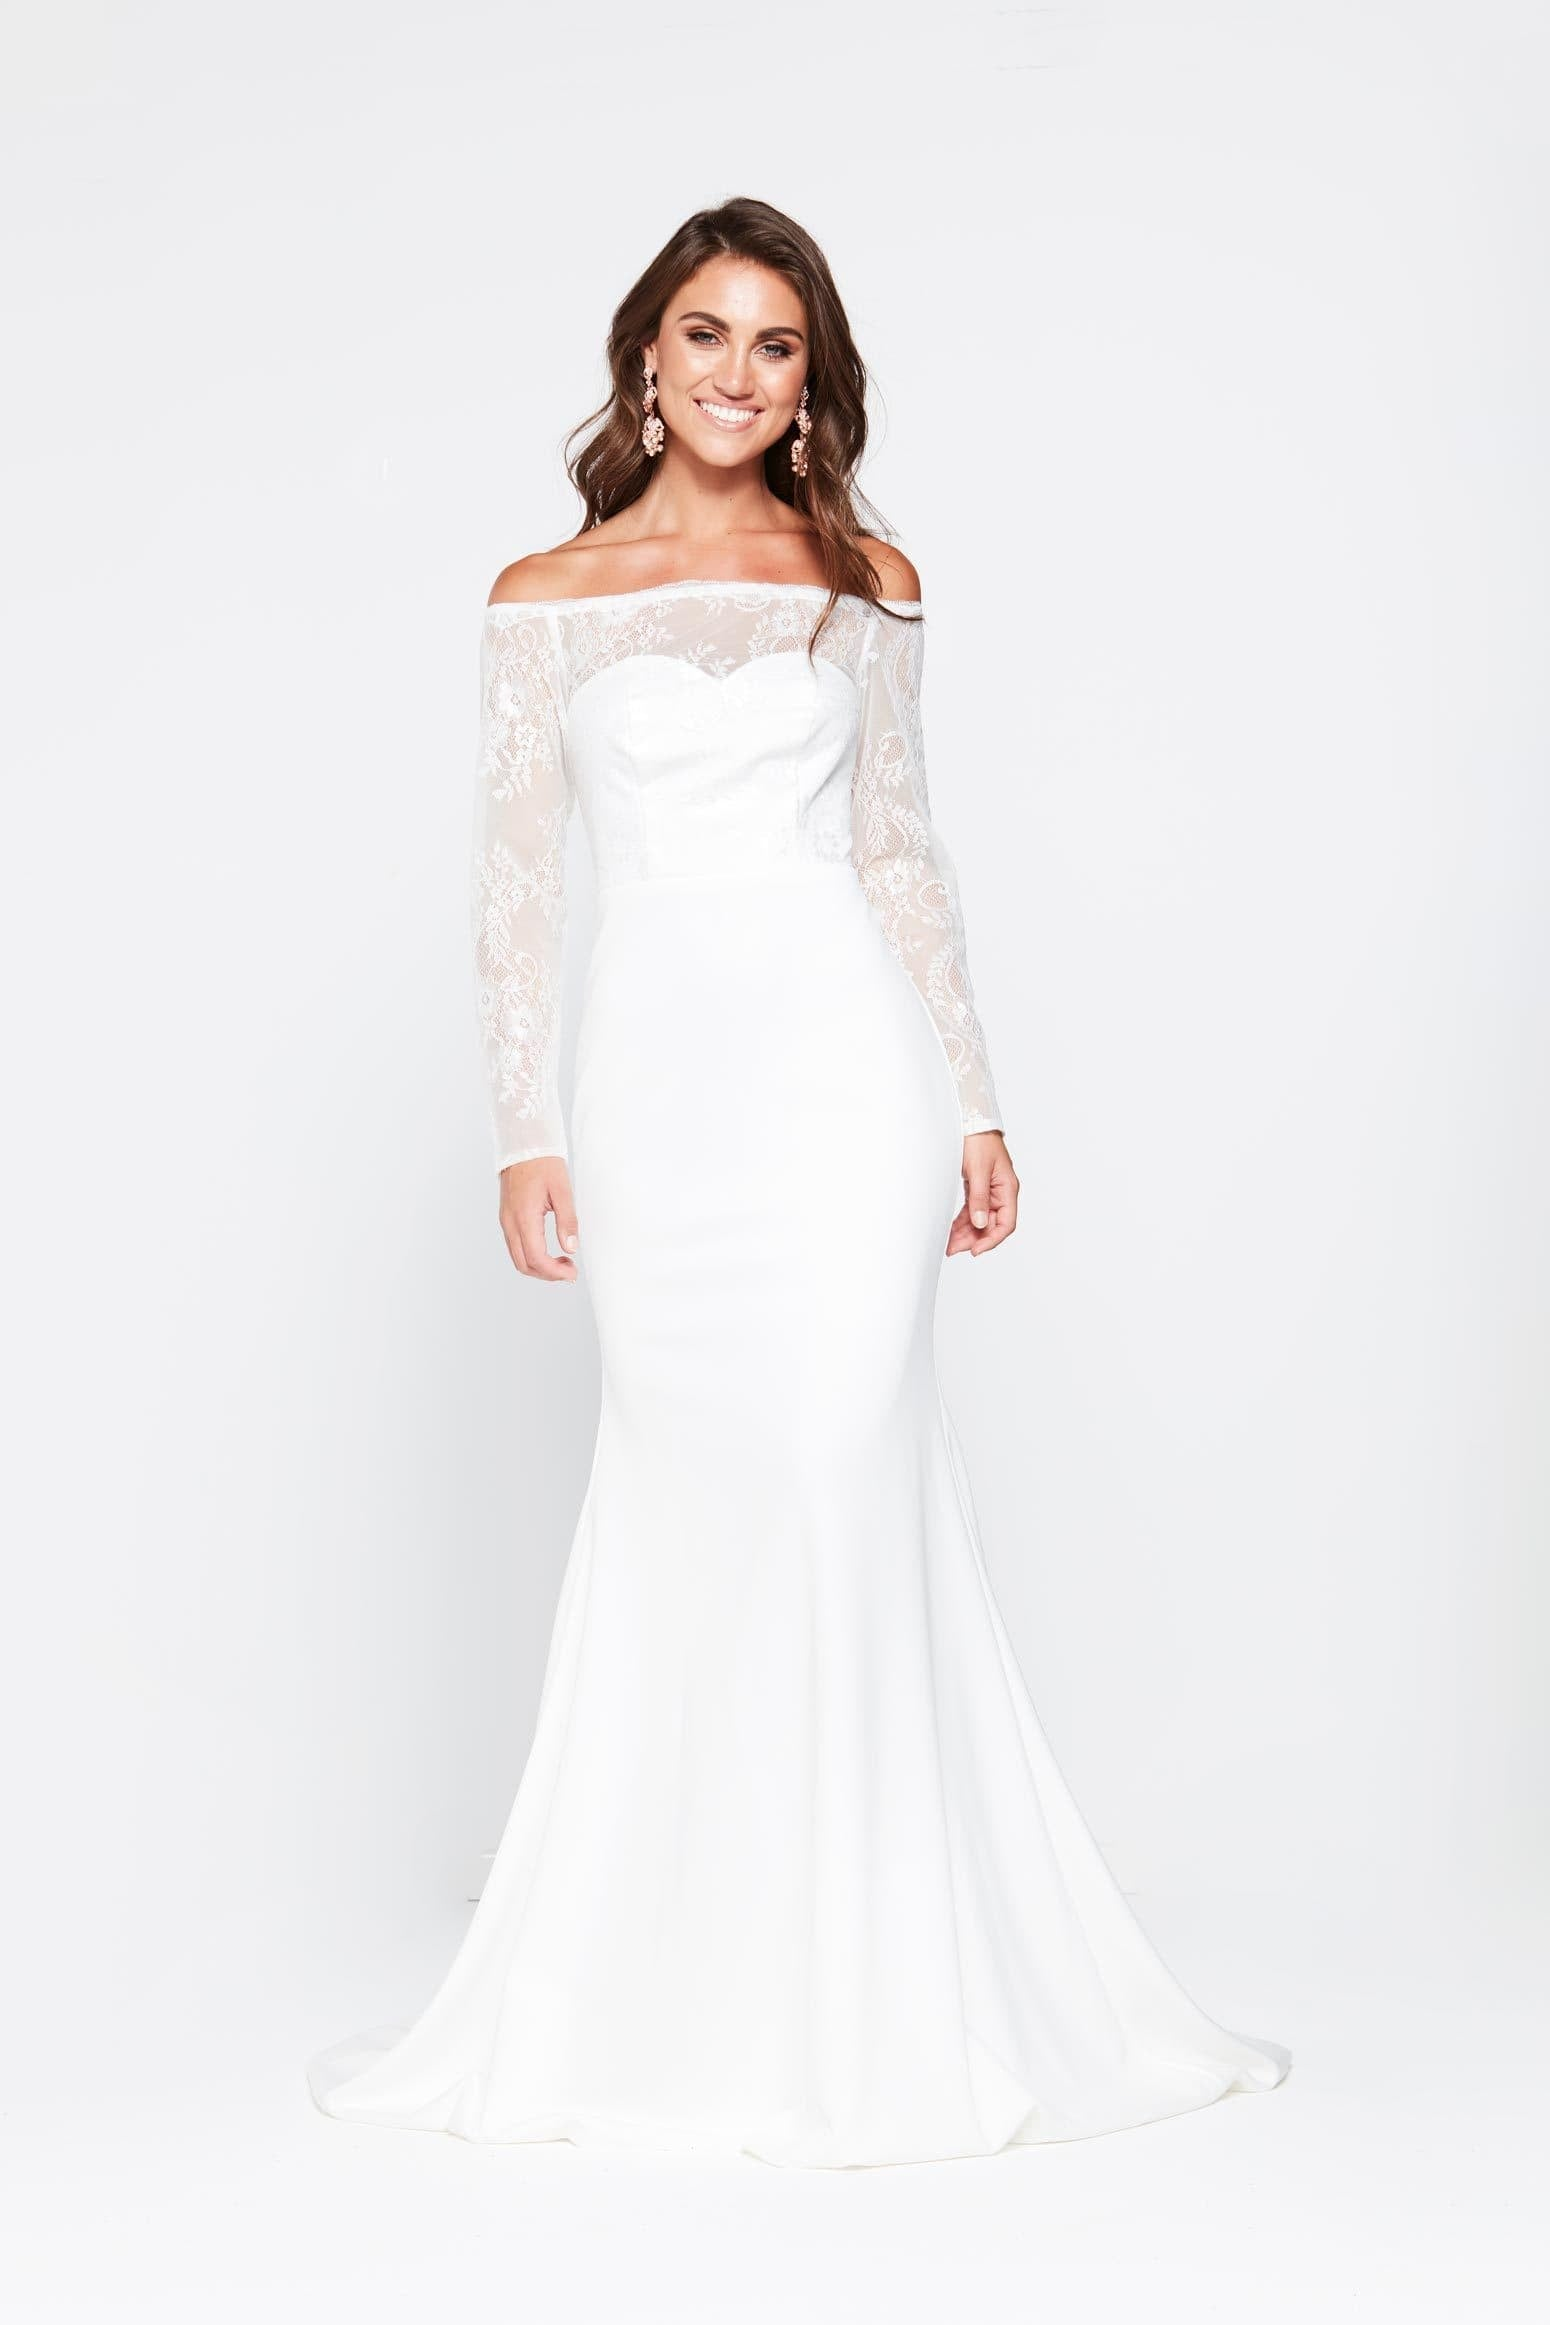 e8b6c5279b7b A N Gina - White Jersey Lace Off Shoulder Gown with Long Sleeves ...